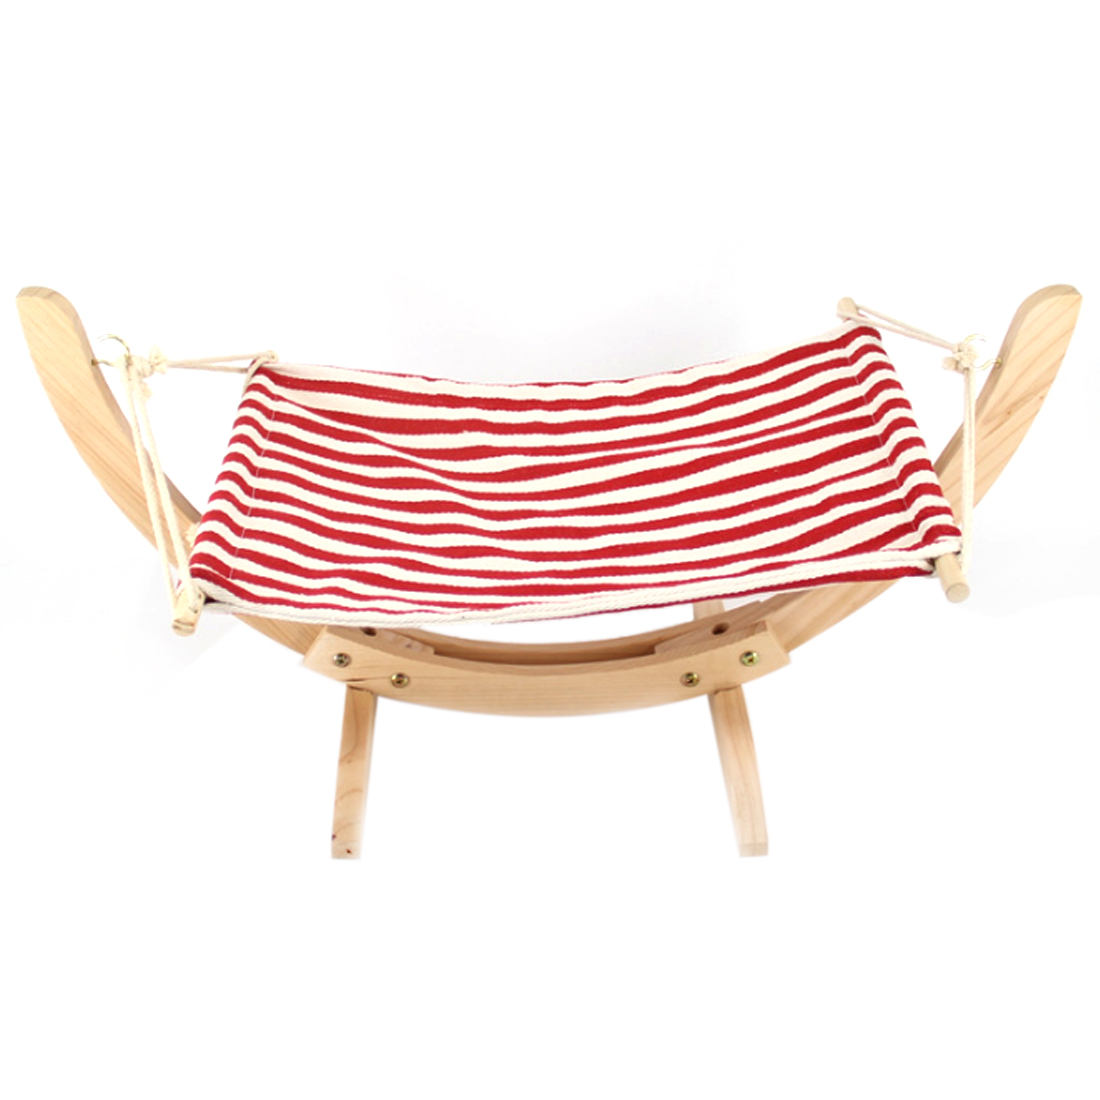 PETFORU Wooden Frame Cat Hammock Hanging Beds for pets - Red and White Stripes